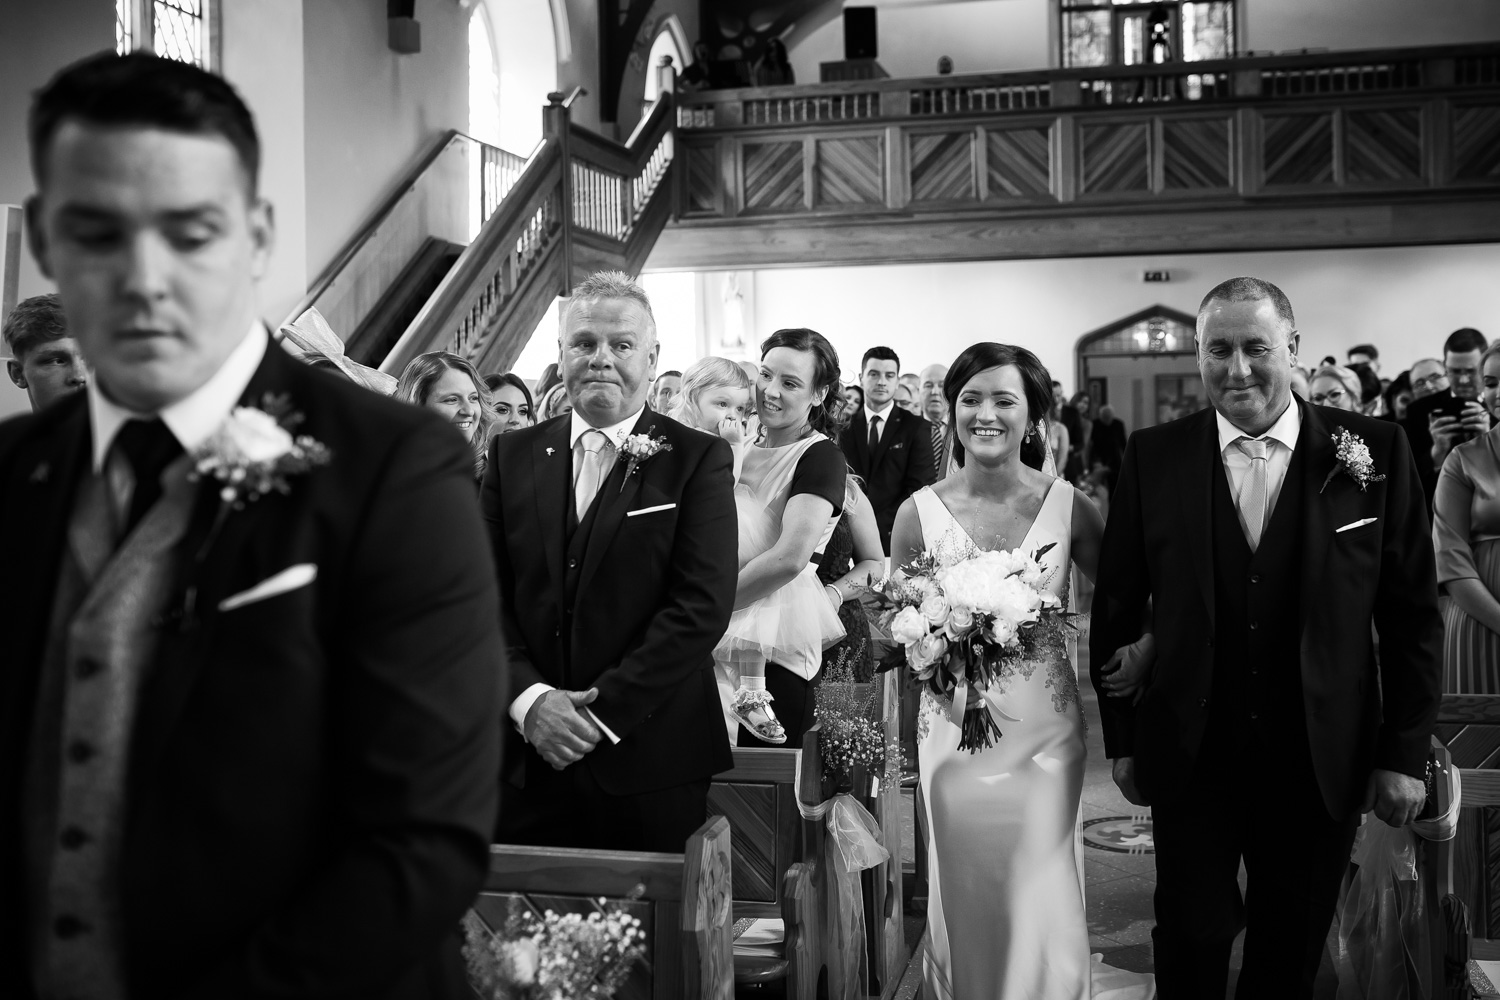 Mark_Barnes_Northern_Ireland_wedding_photographer_redcastle_hotel_Donegal_Wedding_photography_Donegal_wedding_photographer-15.jpg